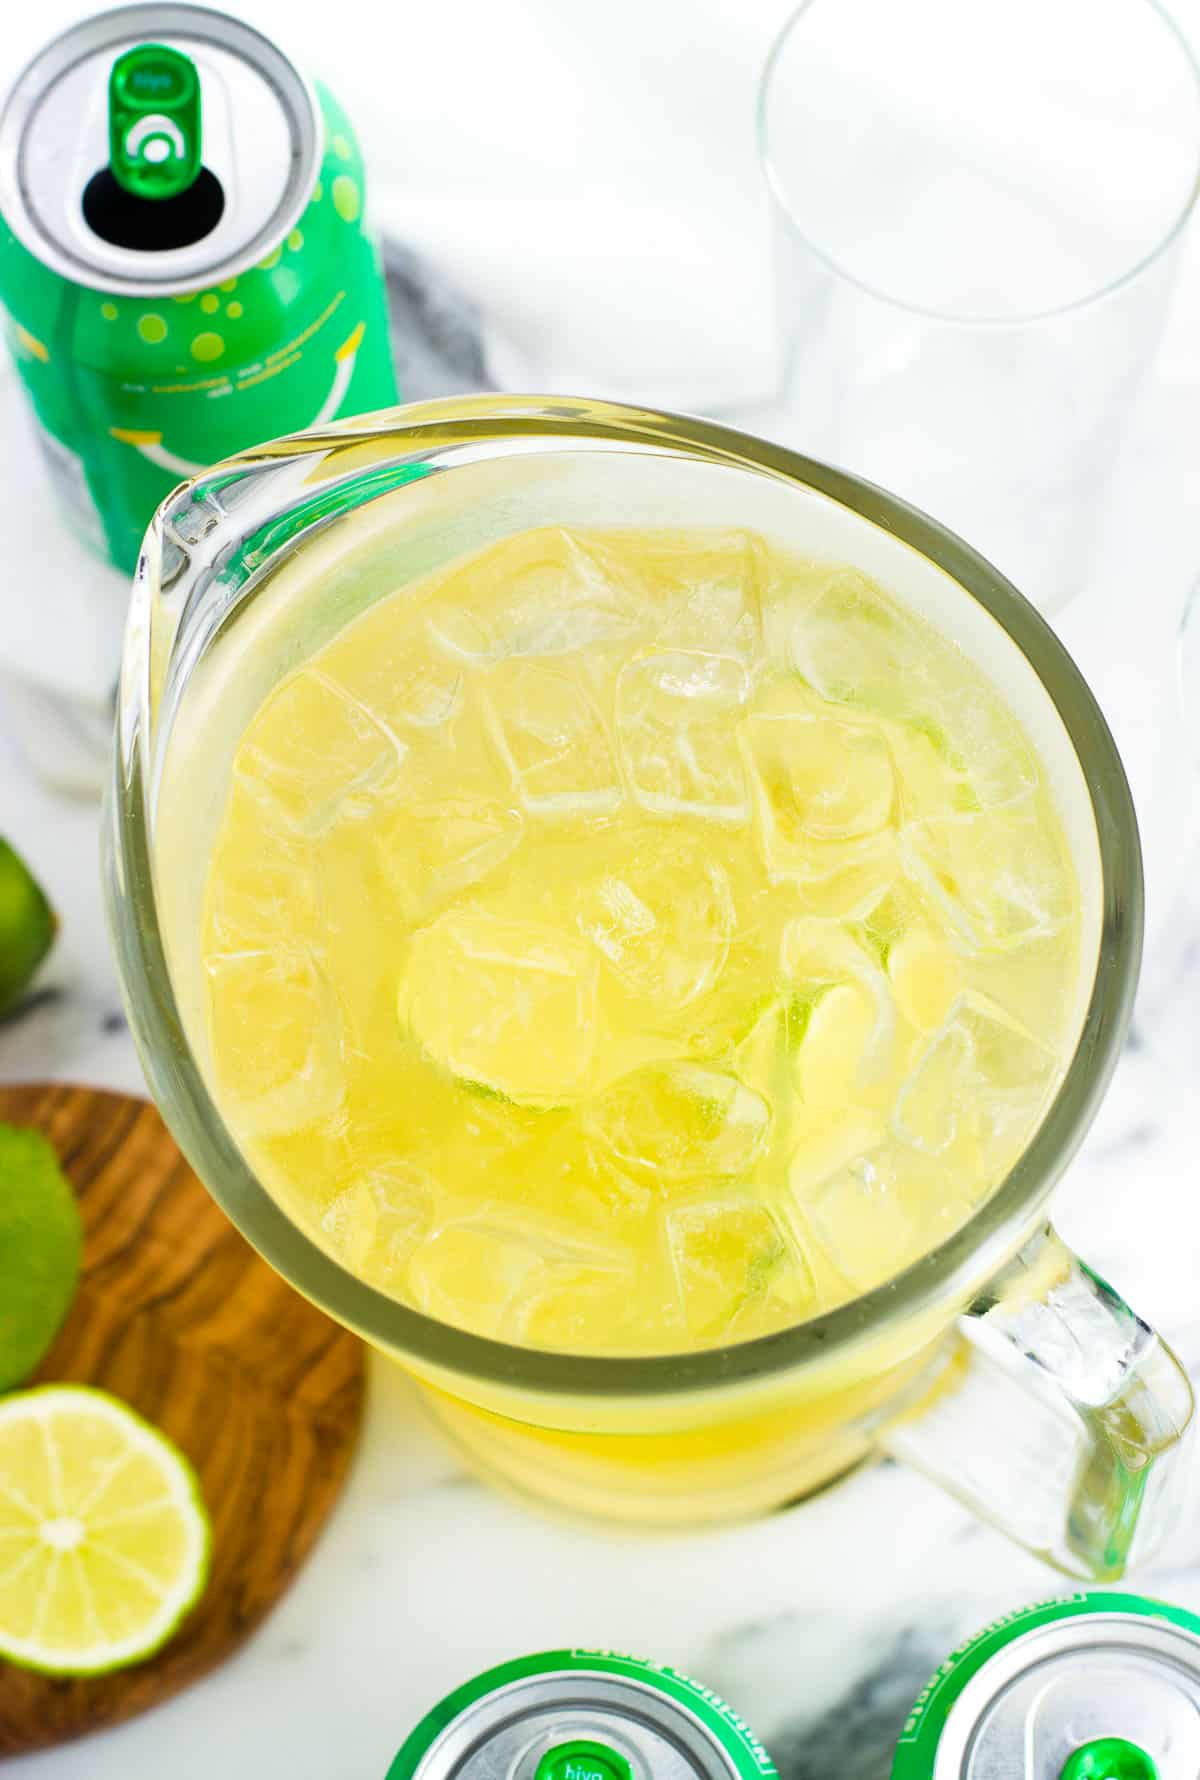 A glass mocktail pitcher filled with ice and next to cans of bubly and cut limes.